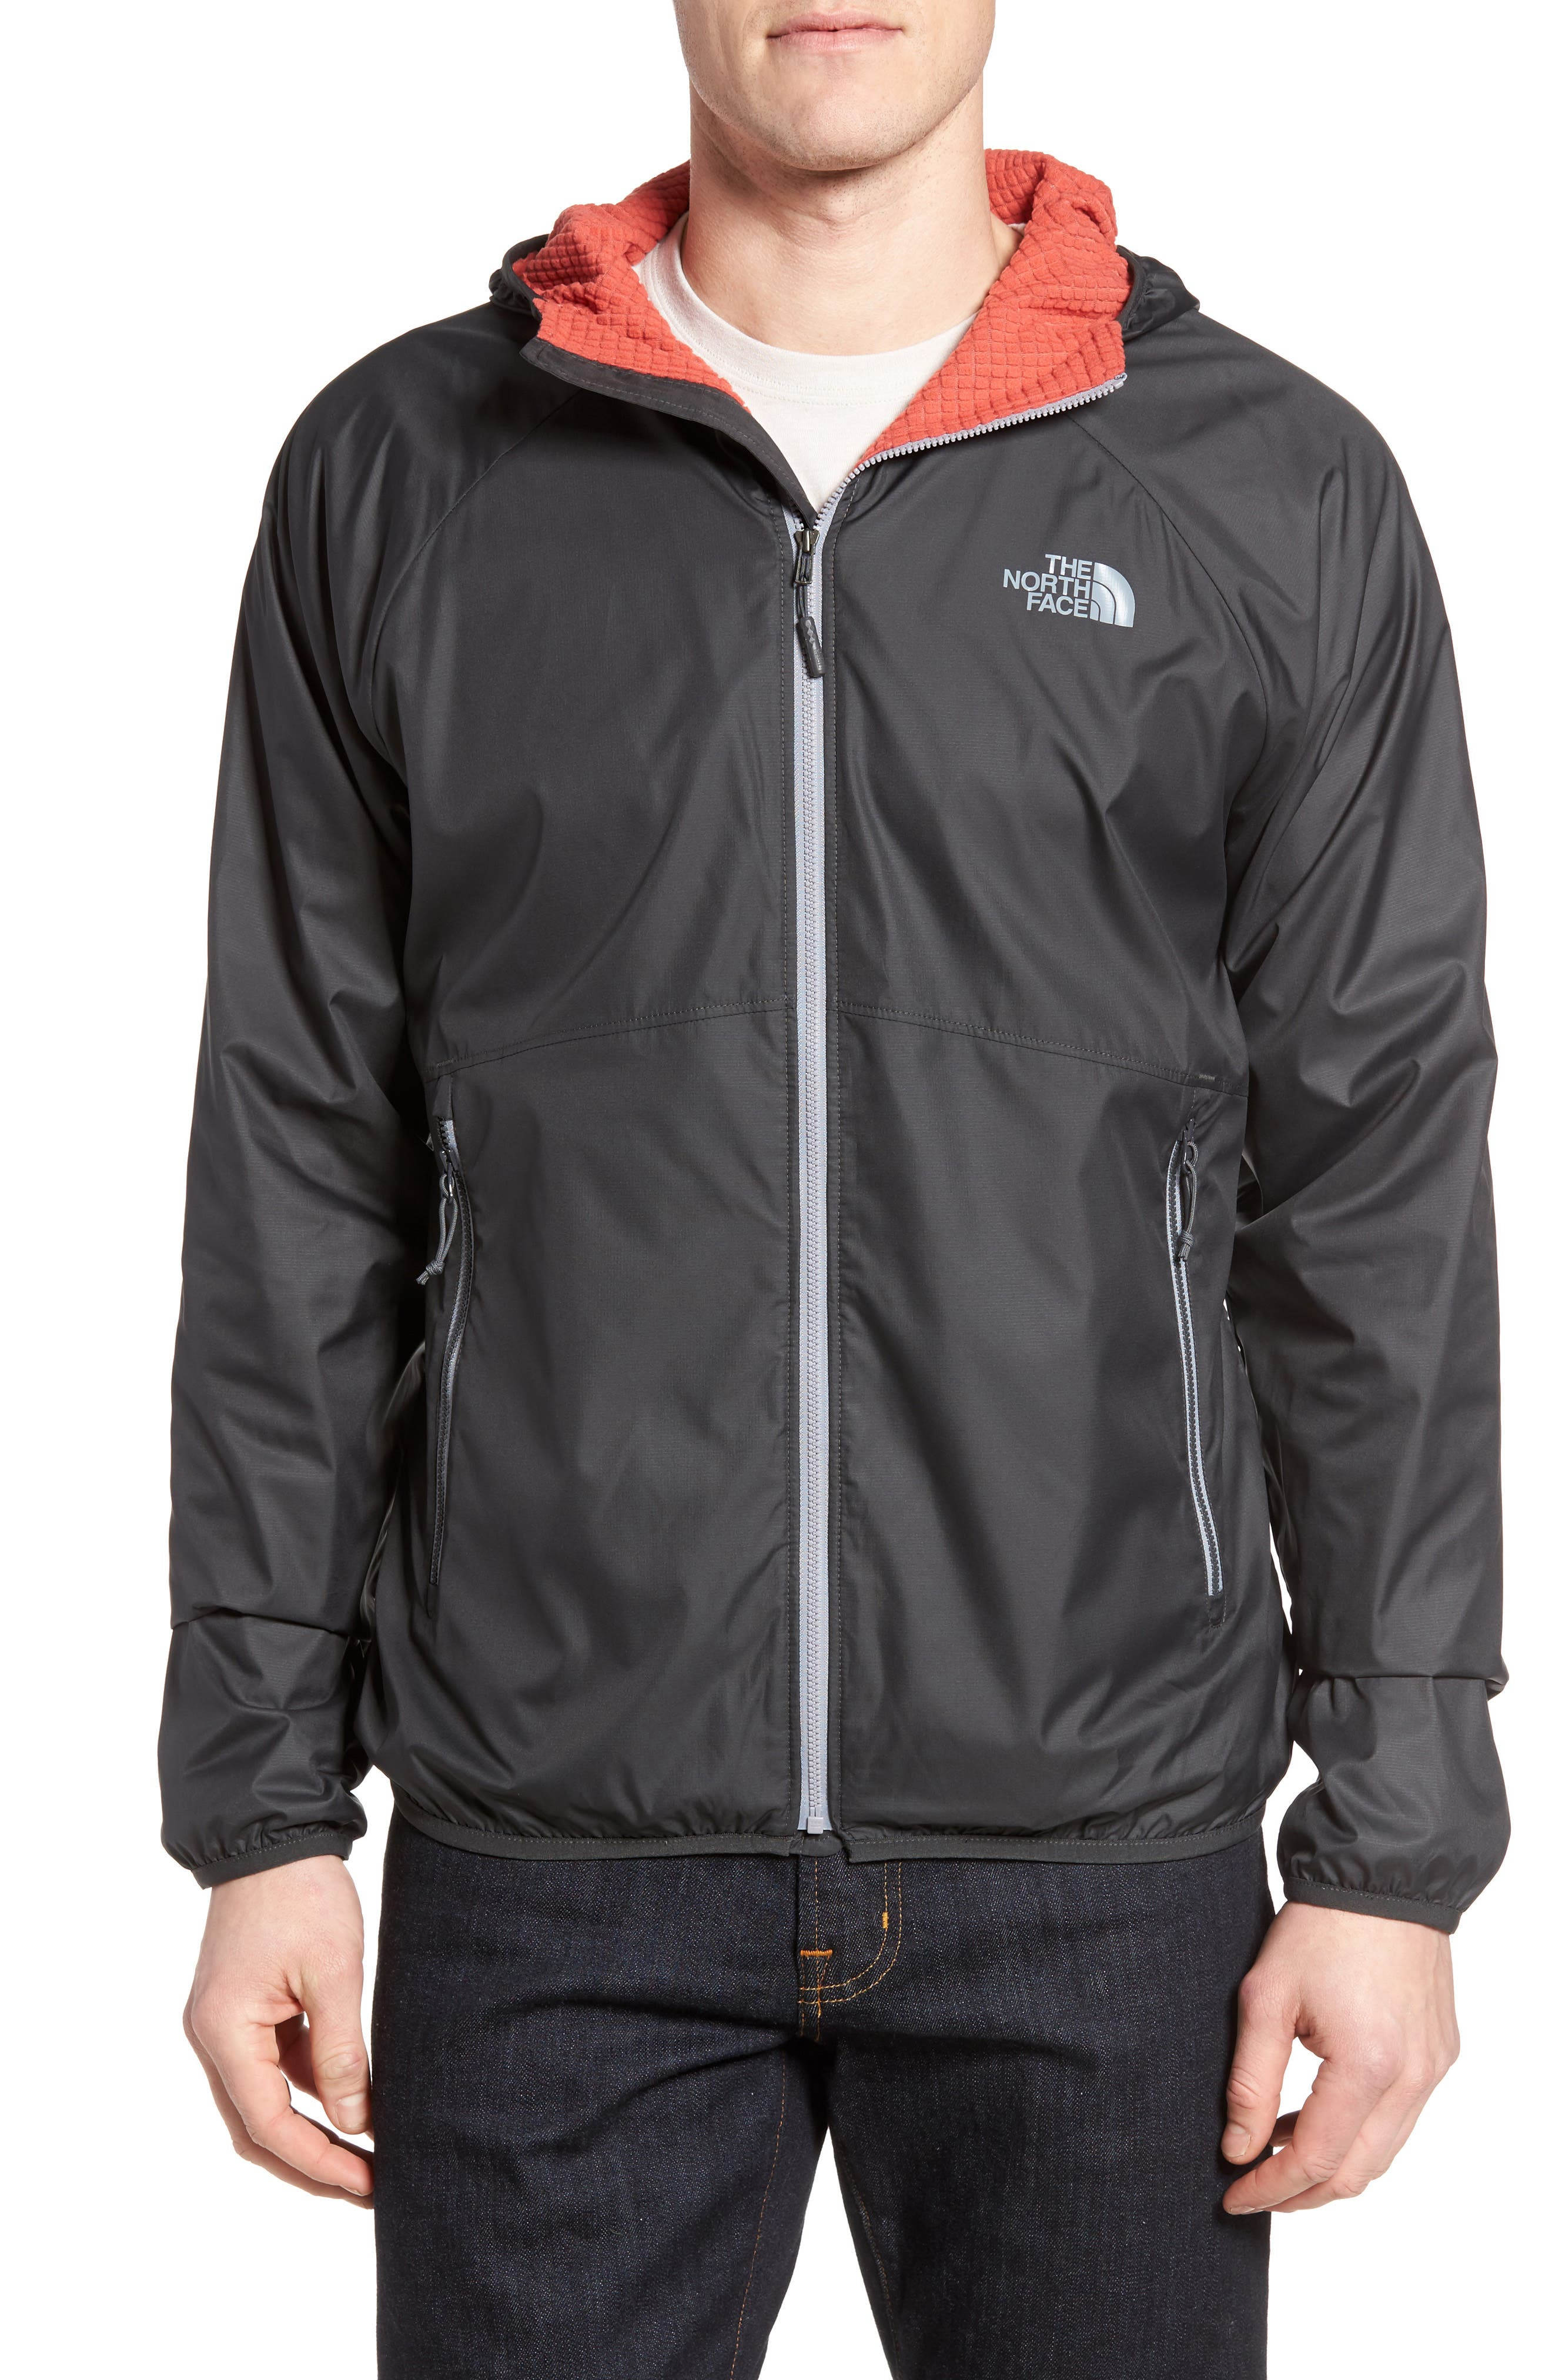 Desmond WindWall<sup>®</sup> Jacket,                             Main thumbnail 1, color,                             Asphalt Grey/ Sunbaked Red